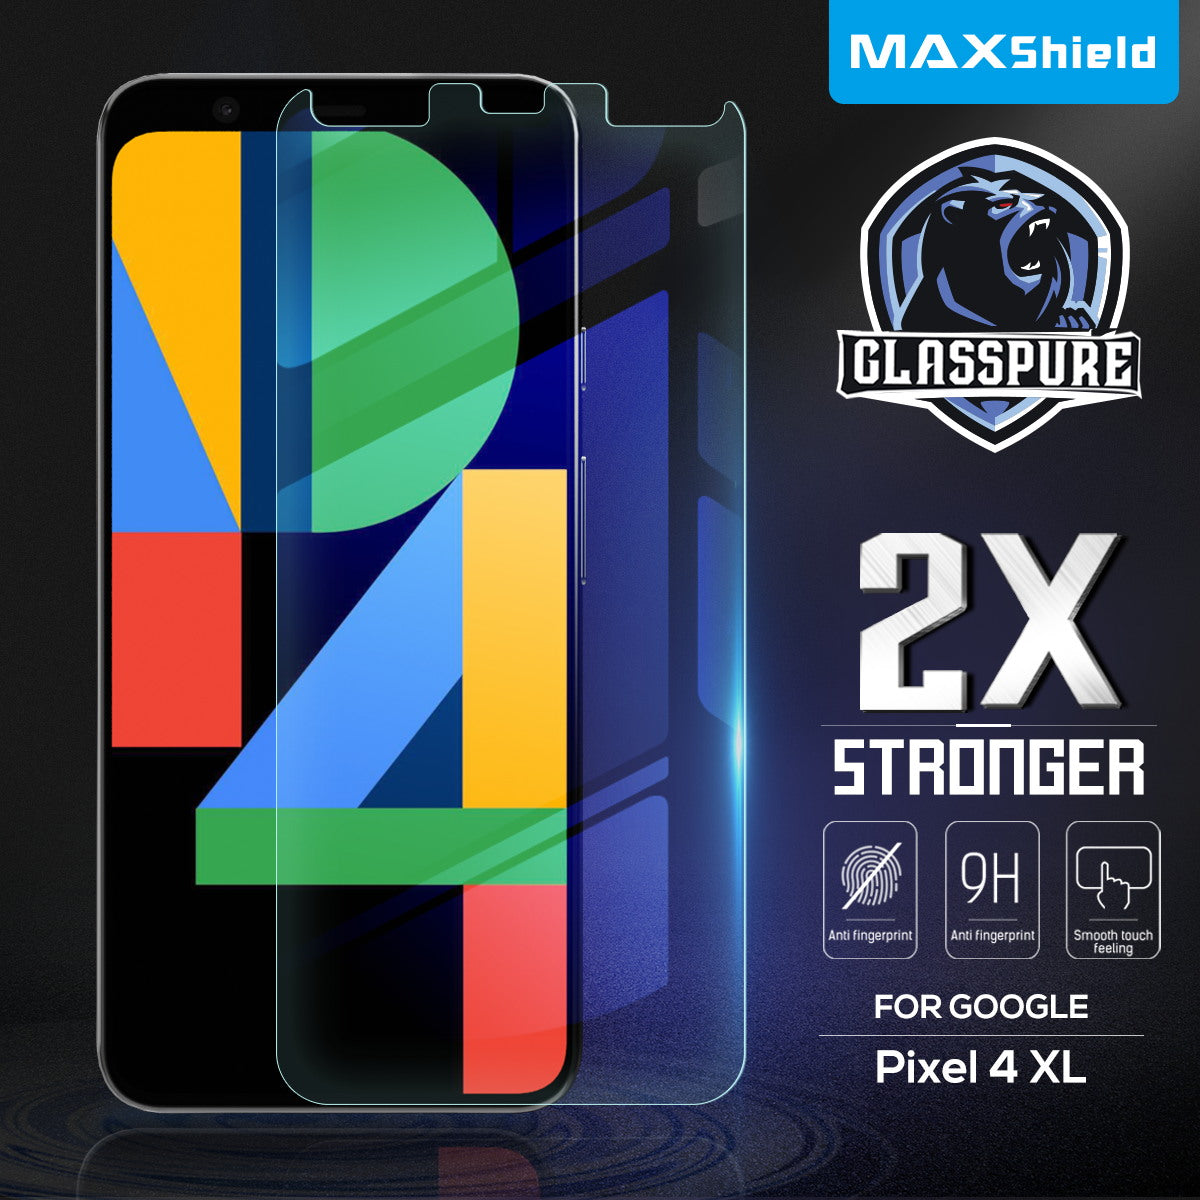 Google Pixel 4 XL MAXSHIELD Premium Tempered Glass Screen Protector